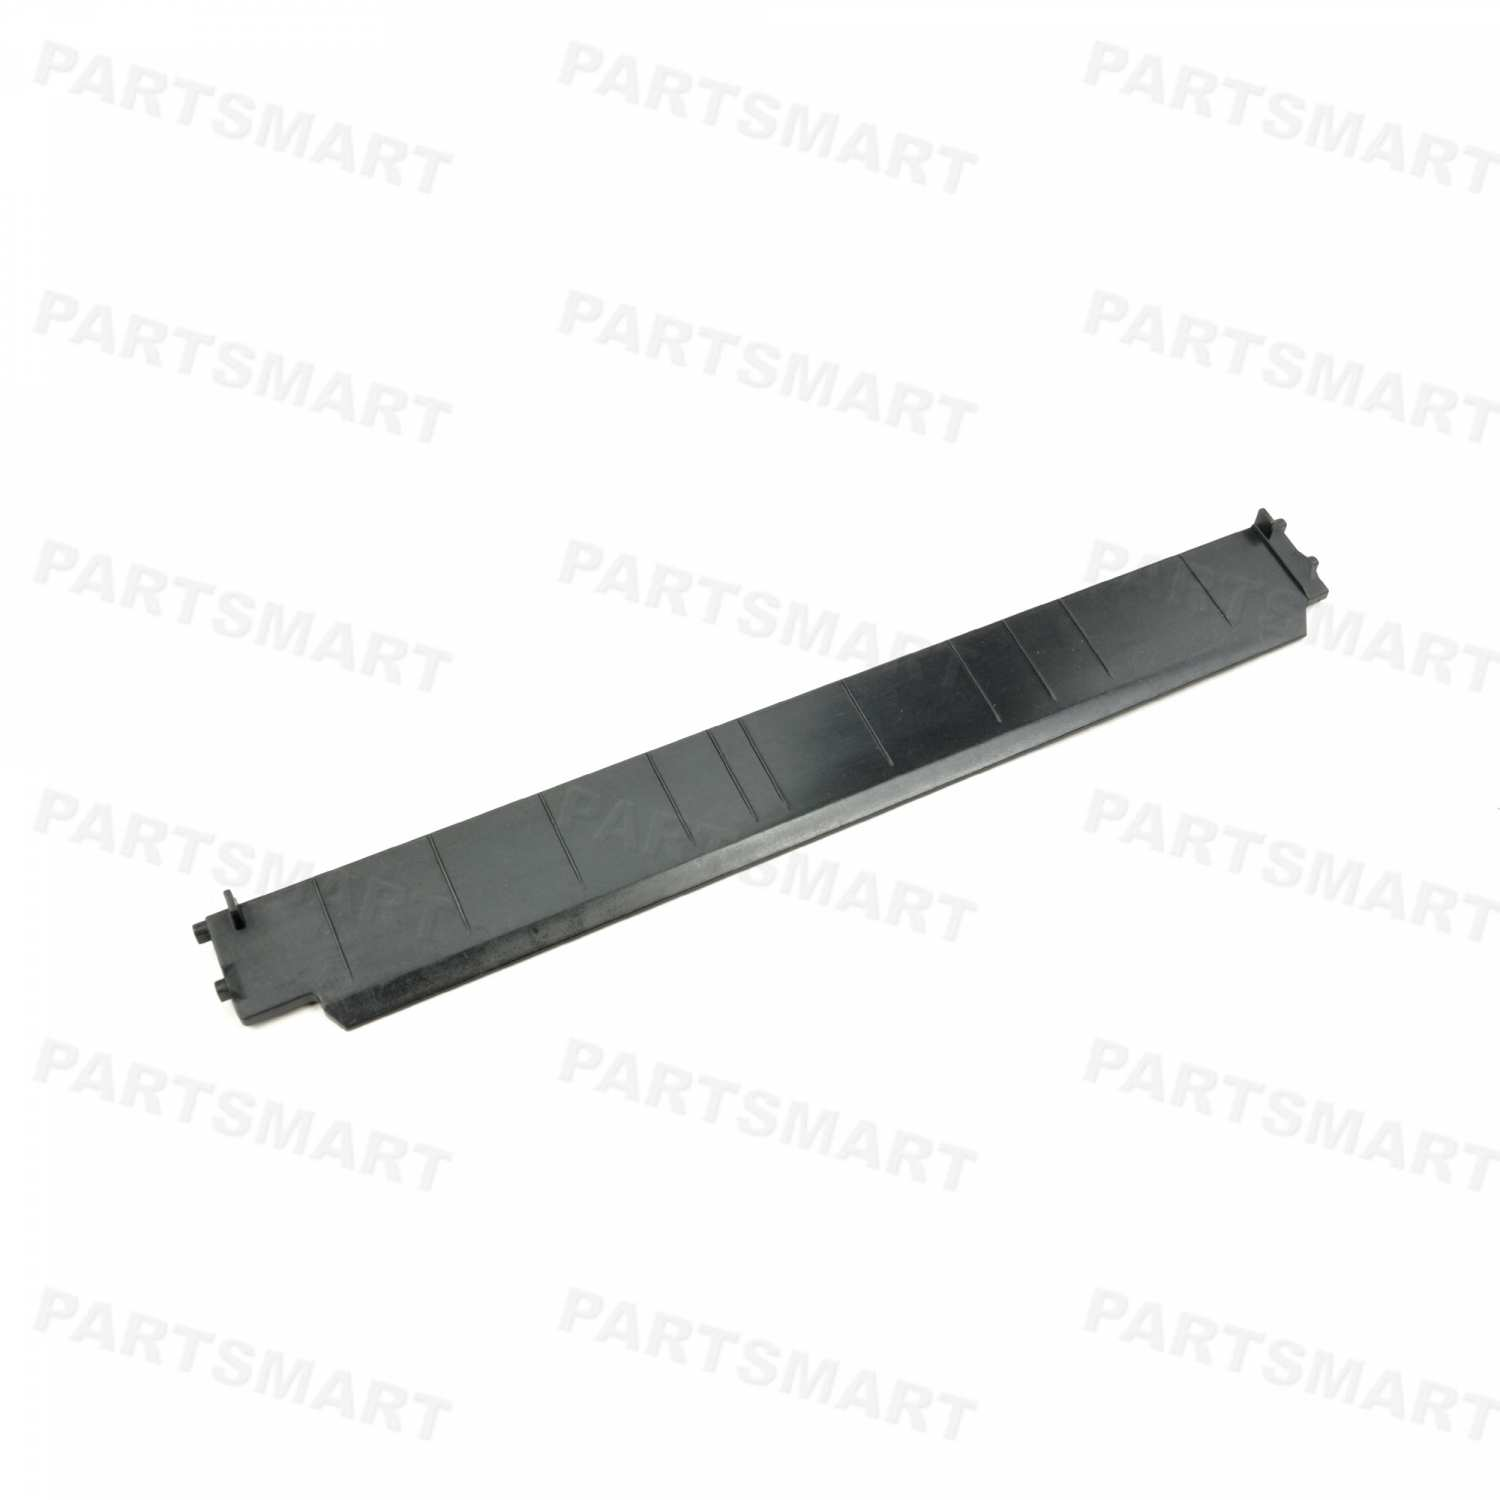 GD-T650-ENT Guide Fuser Entry for Lexmark T65x